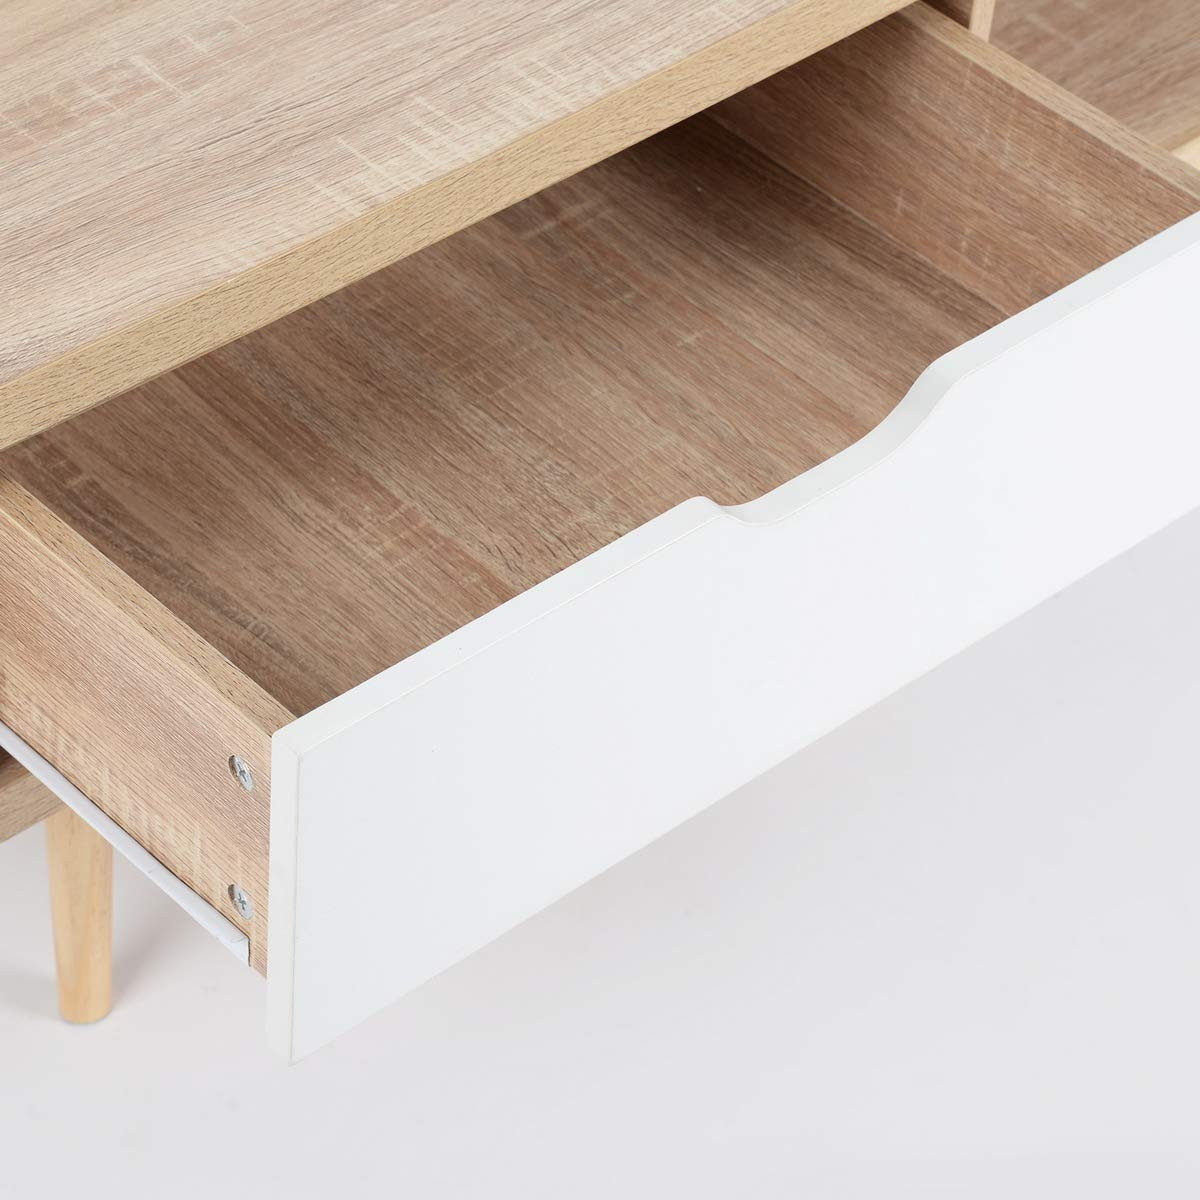 Coffee Table Wooden Table for Living Room Bedroom Home and Office